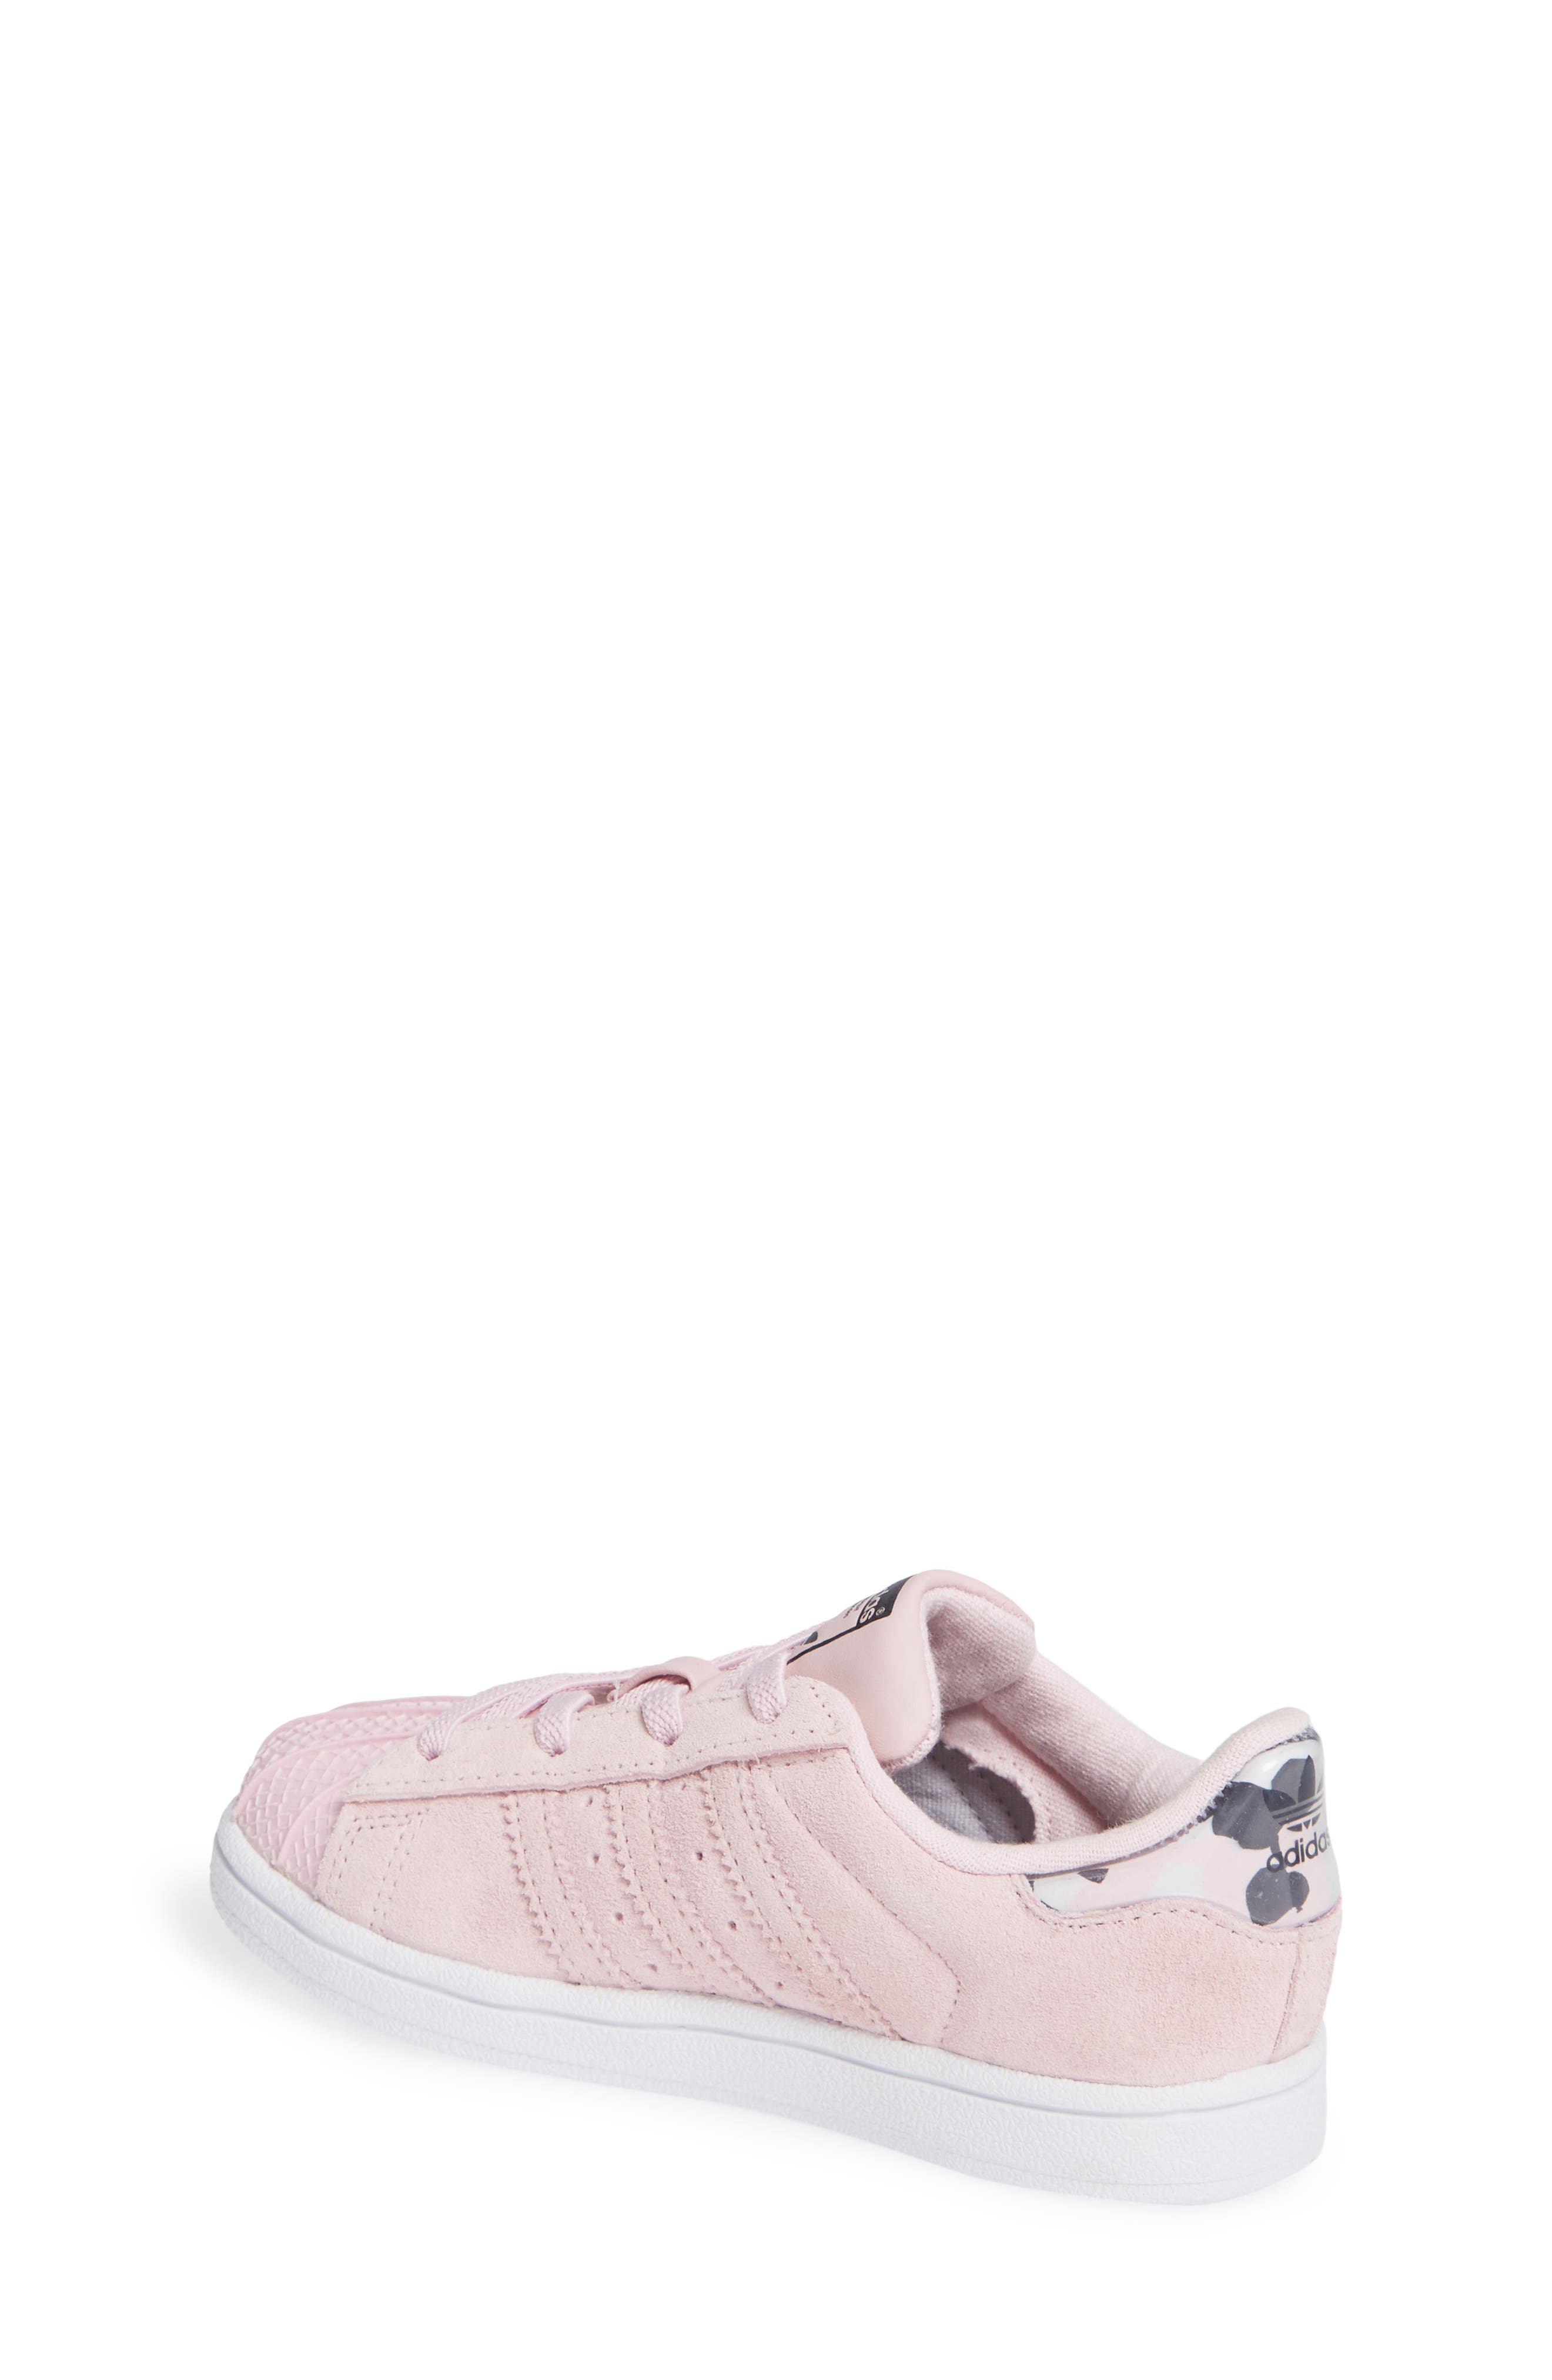 Superstar Low Top Sneaker,                             Alternate thumbnail 2, color,                             CLEAR PINK/ WHITE